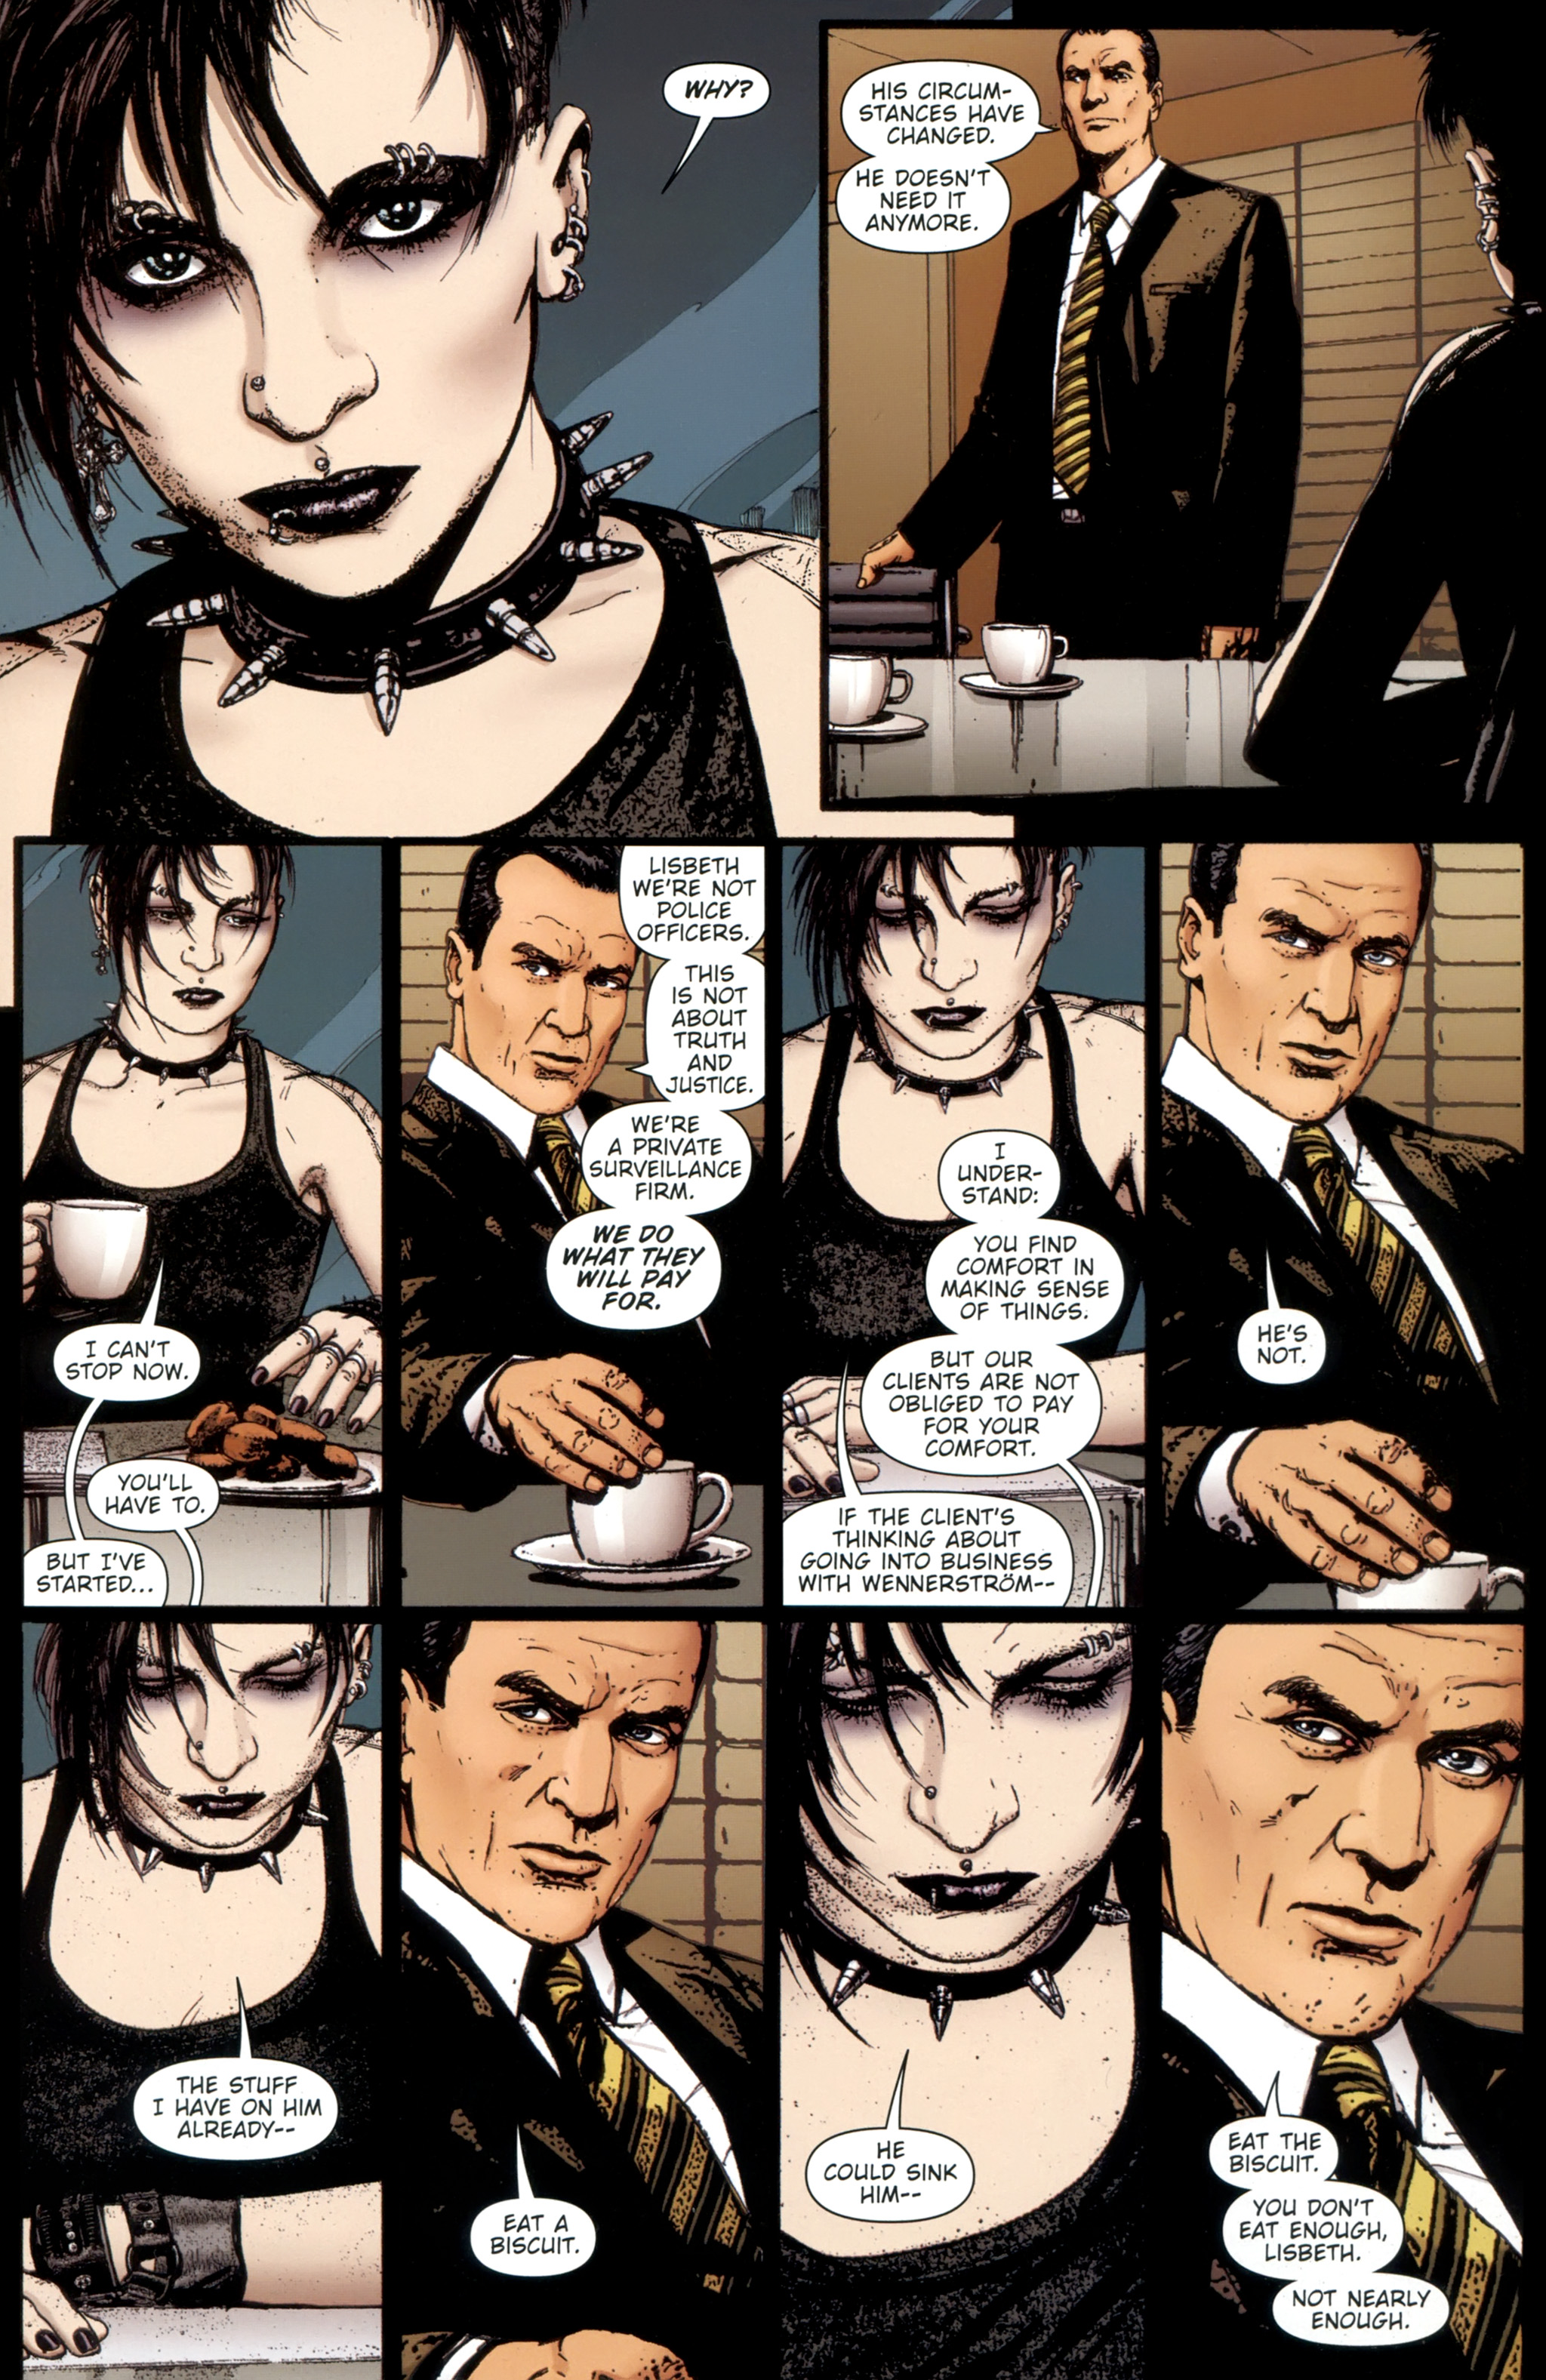 Read online The Girl With the Dragon Tattoo comic -  Issue # TPB 1 - 80